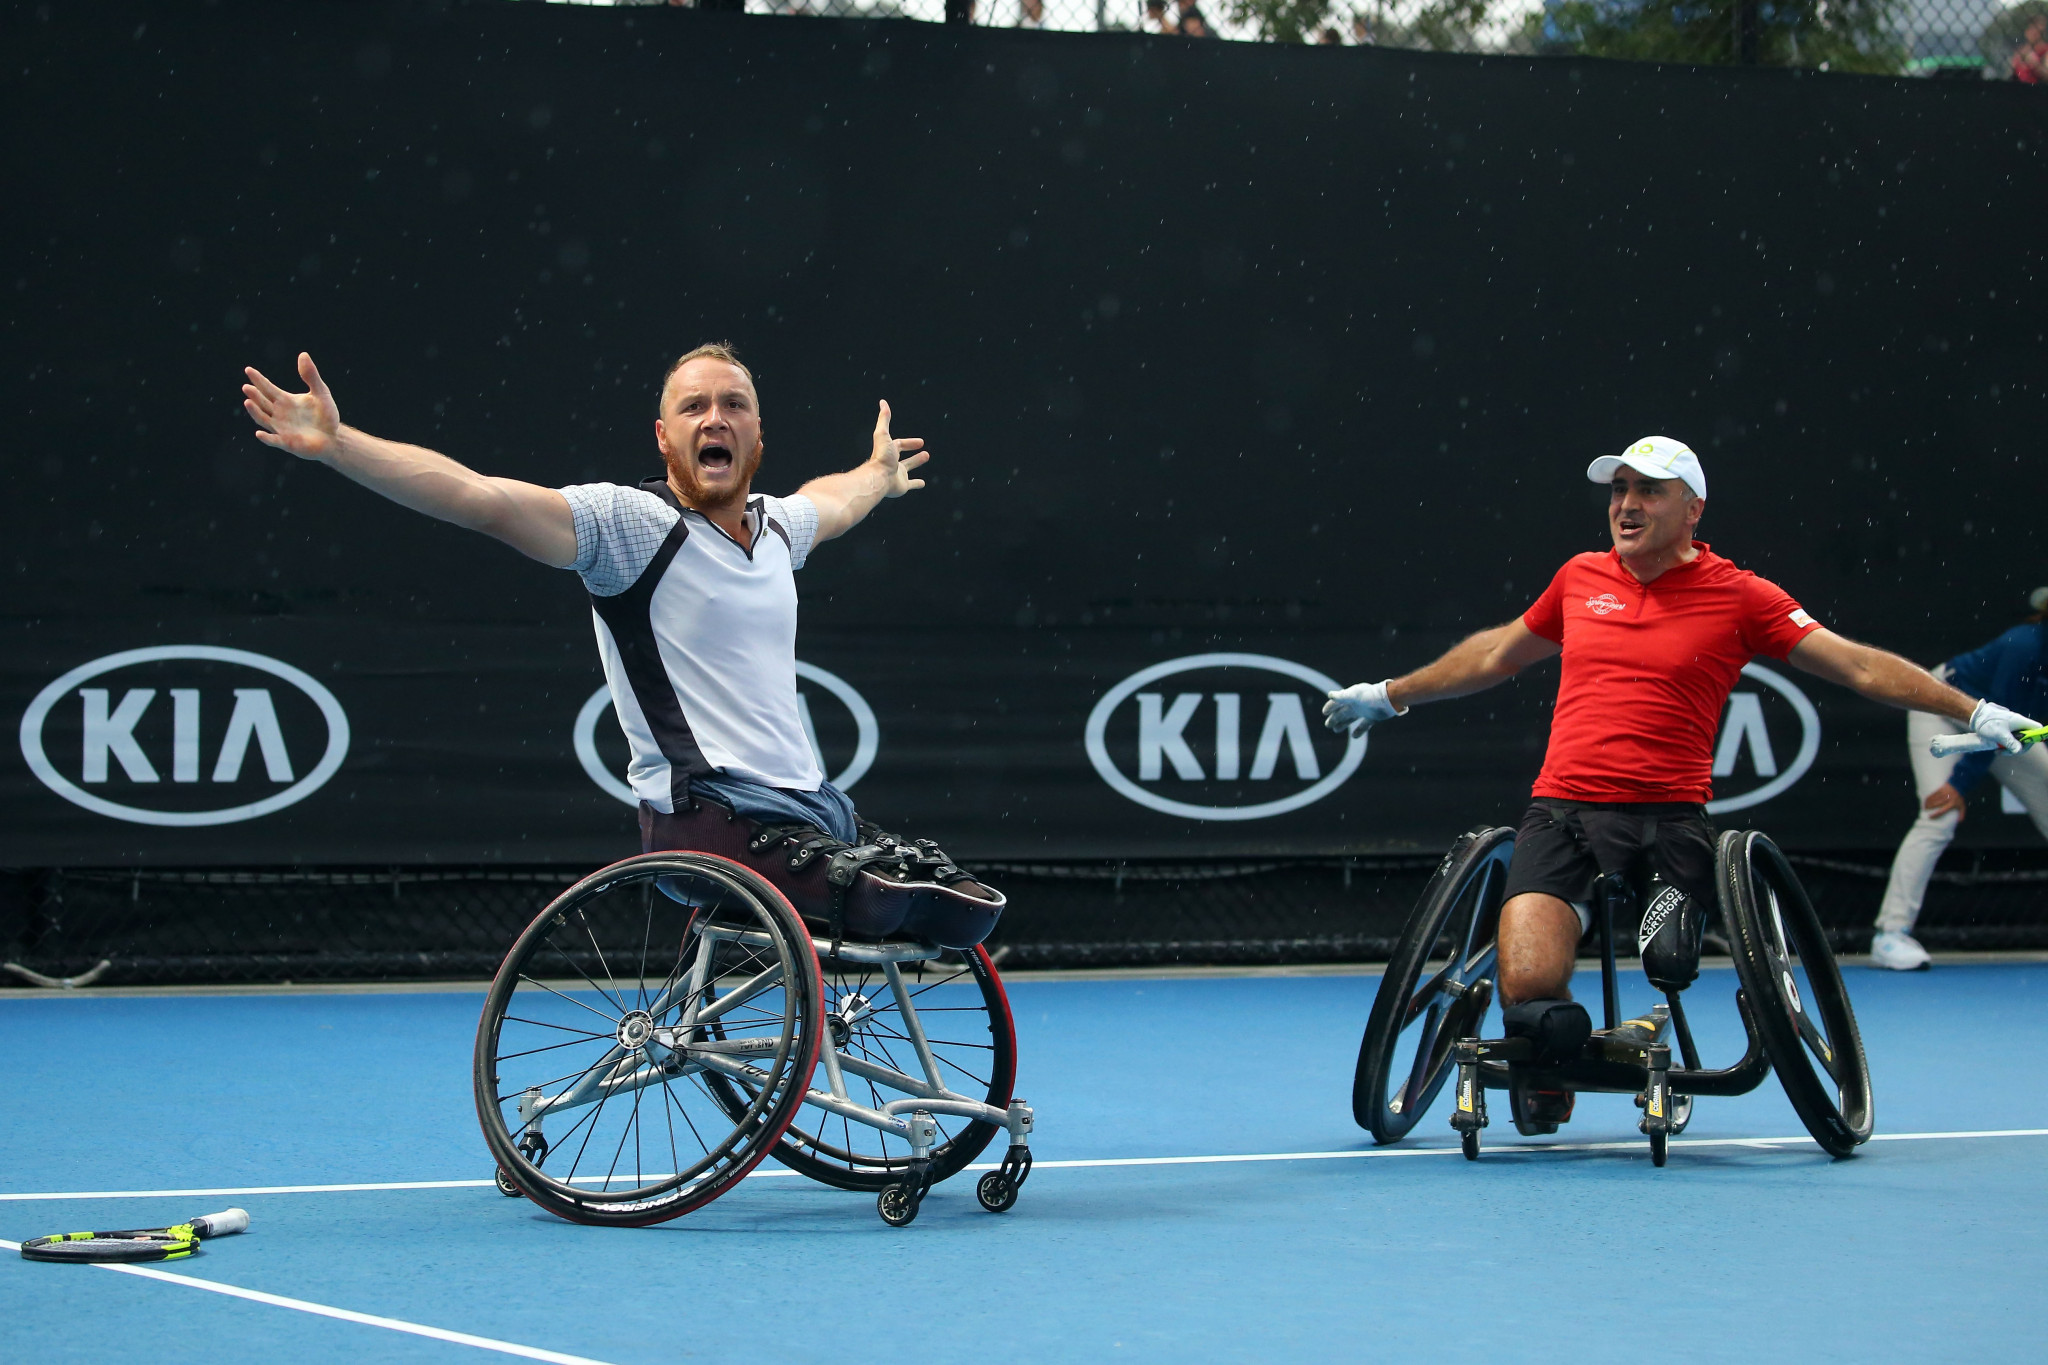 Houdet and Peifer secure men's wheelchair doubles crown at Australian Open